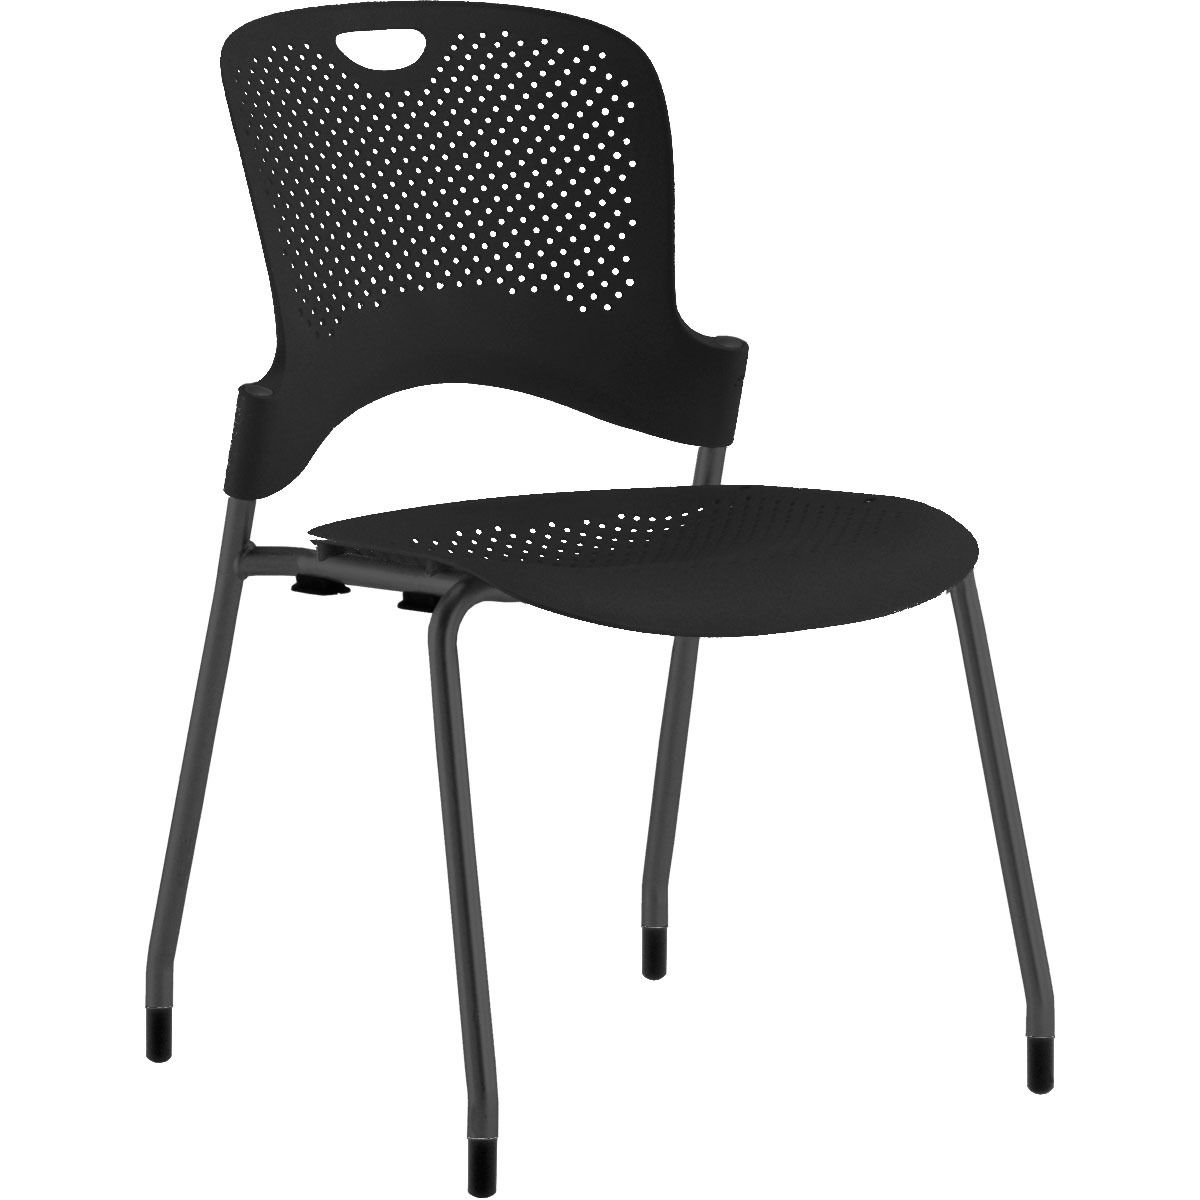 herman miller stacking chairs swivel chair cad block name caper designer jeff weber company location tazza cafe 3rd floor on gates computer science building